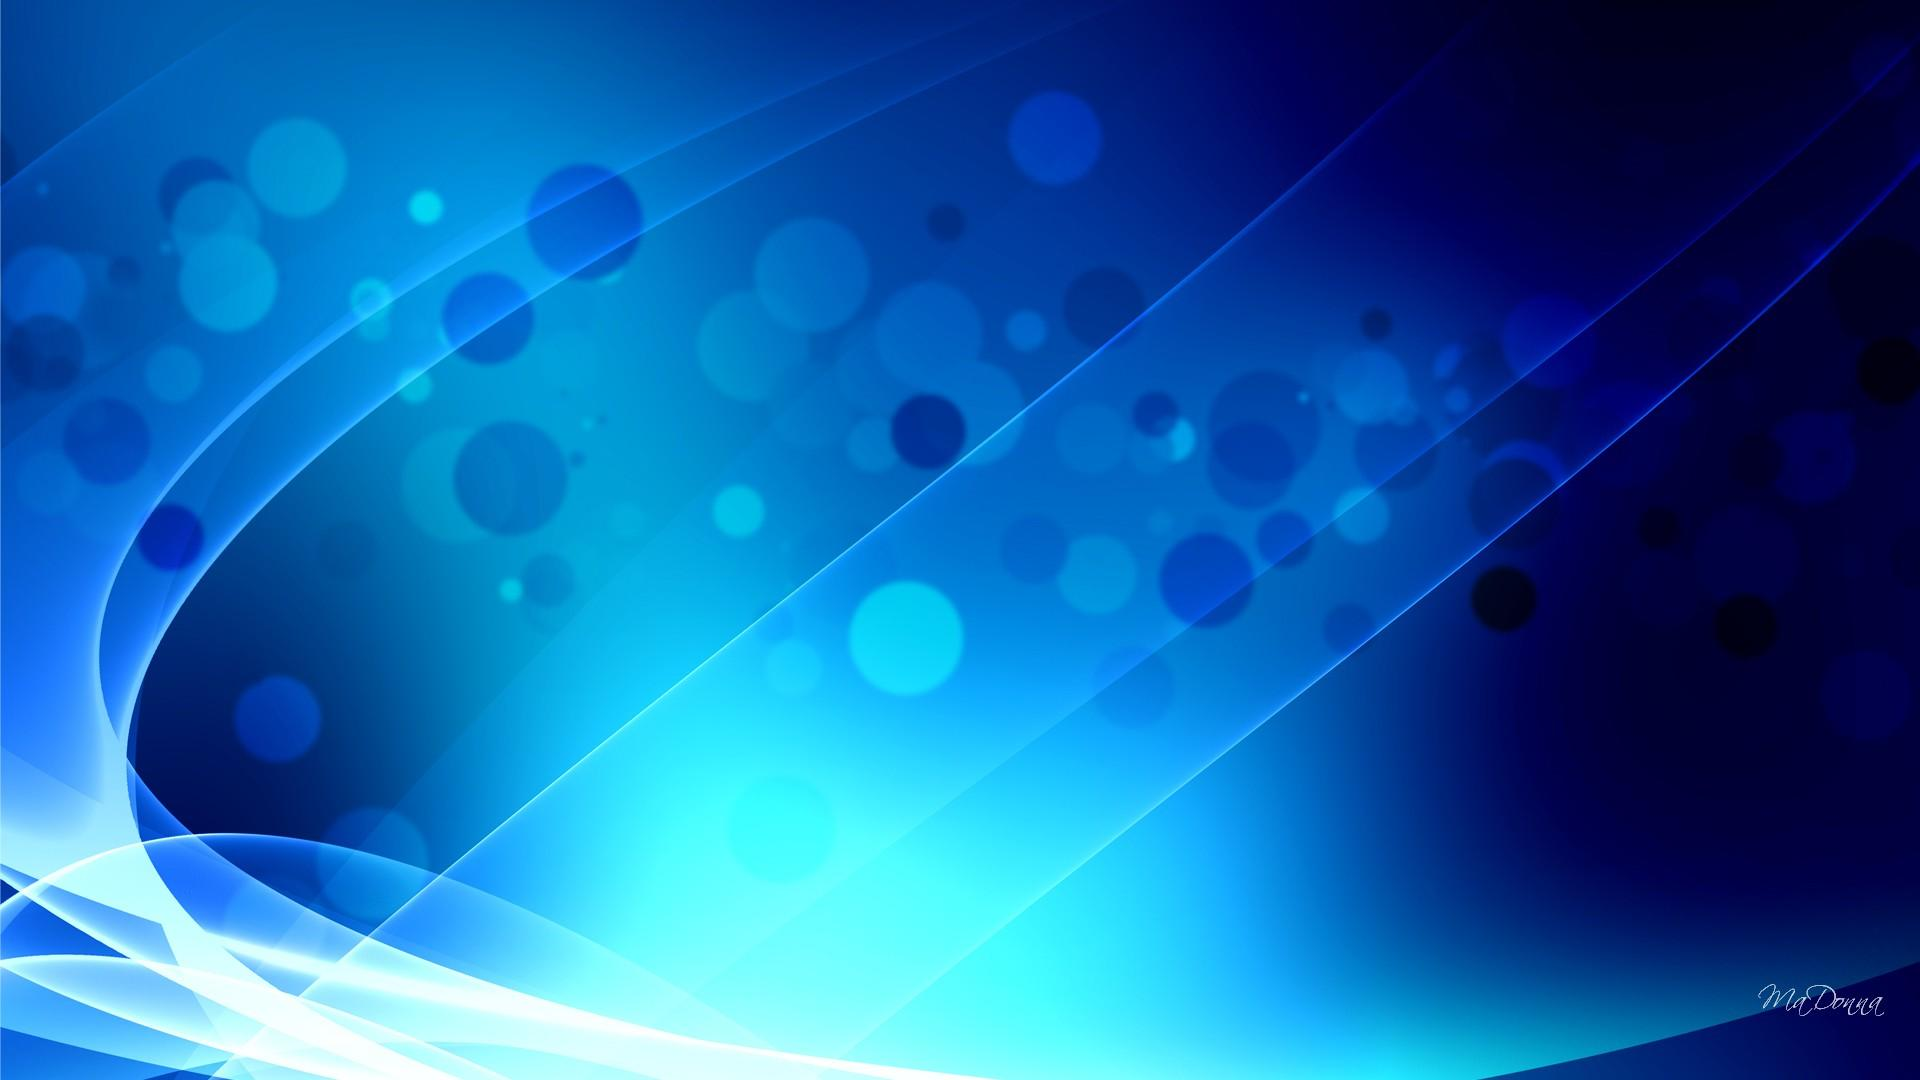 Blue Abstract Backgrounds 01